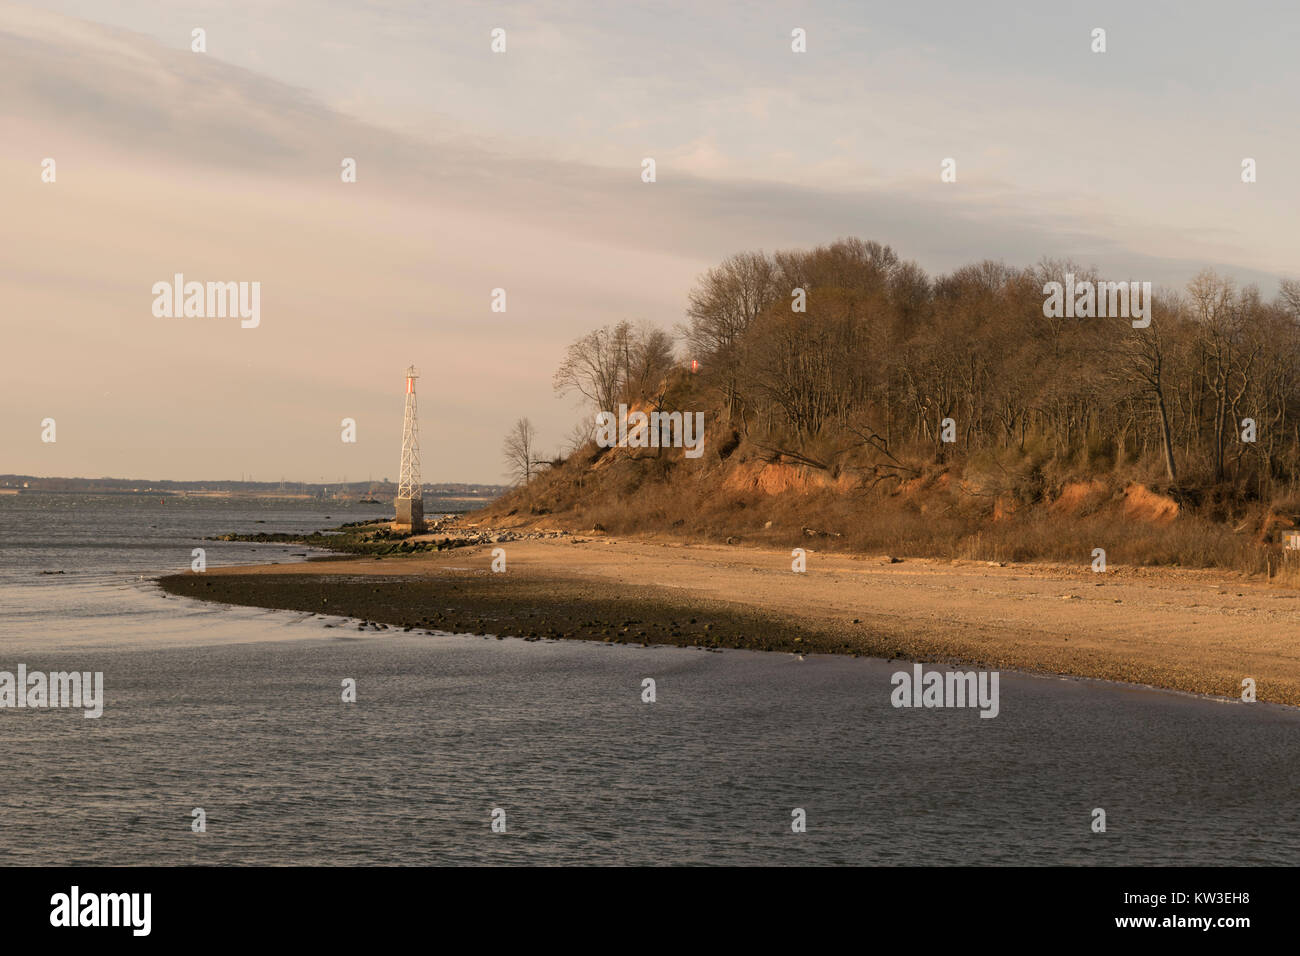 Raritan bay stock photos raritan bay stock images alamy for Staten island fishing